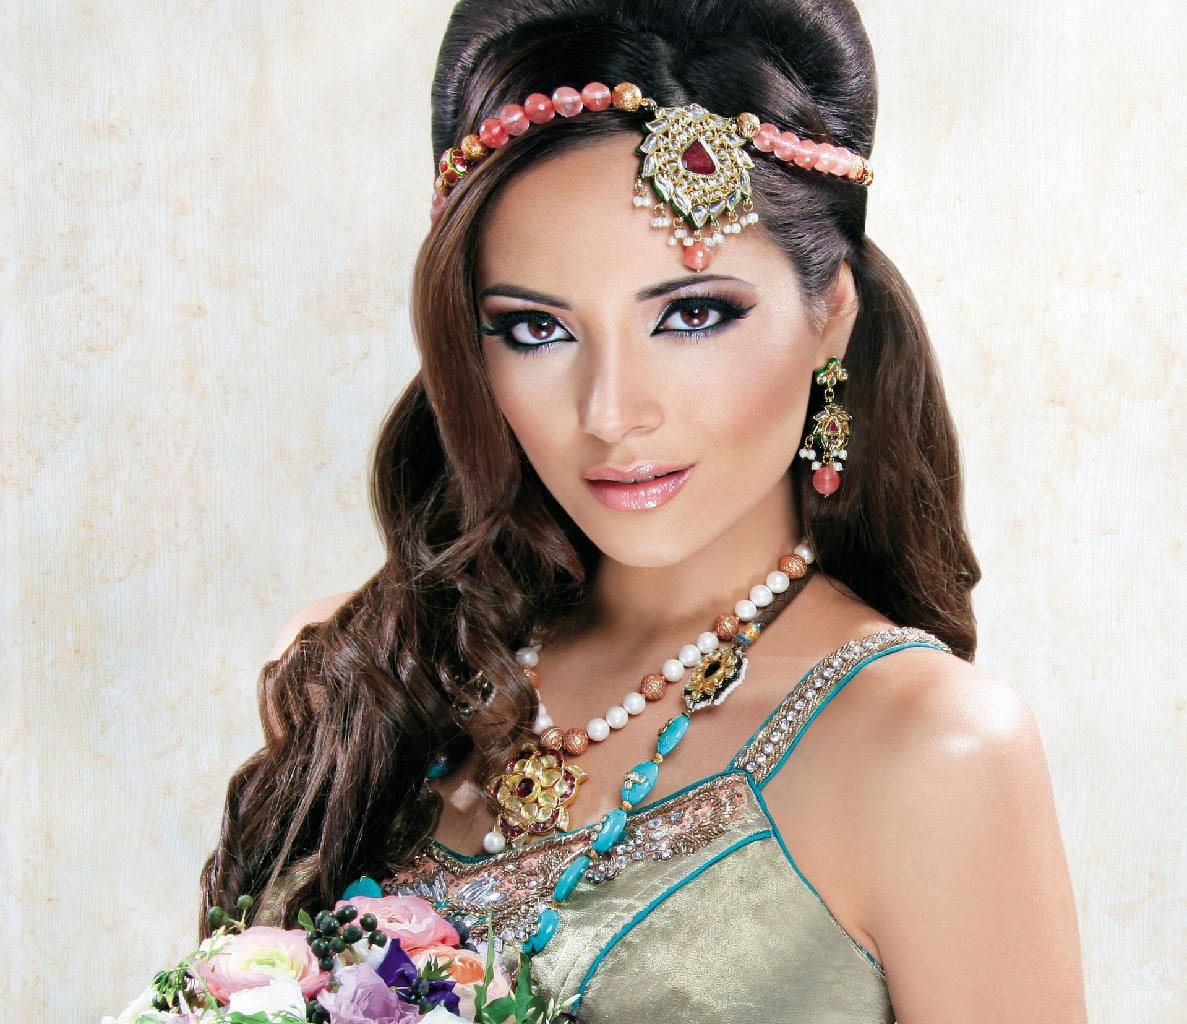 indian wedding hairstyle inspiration : simple hairstyle ideas for